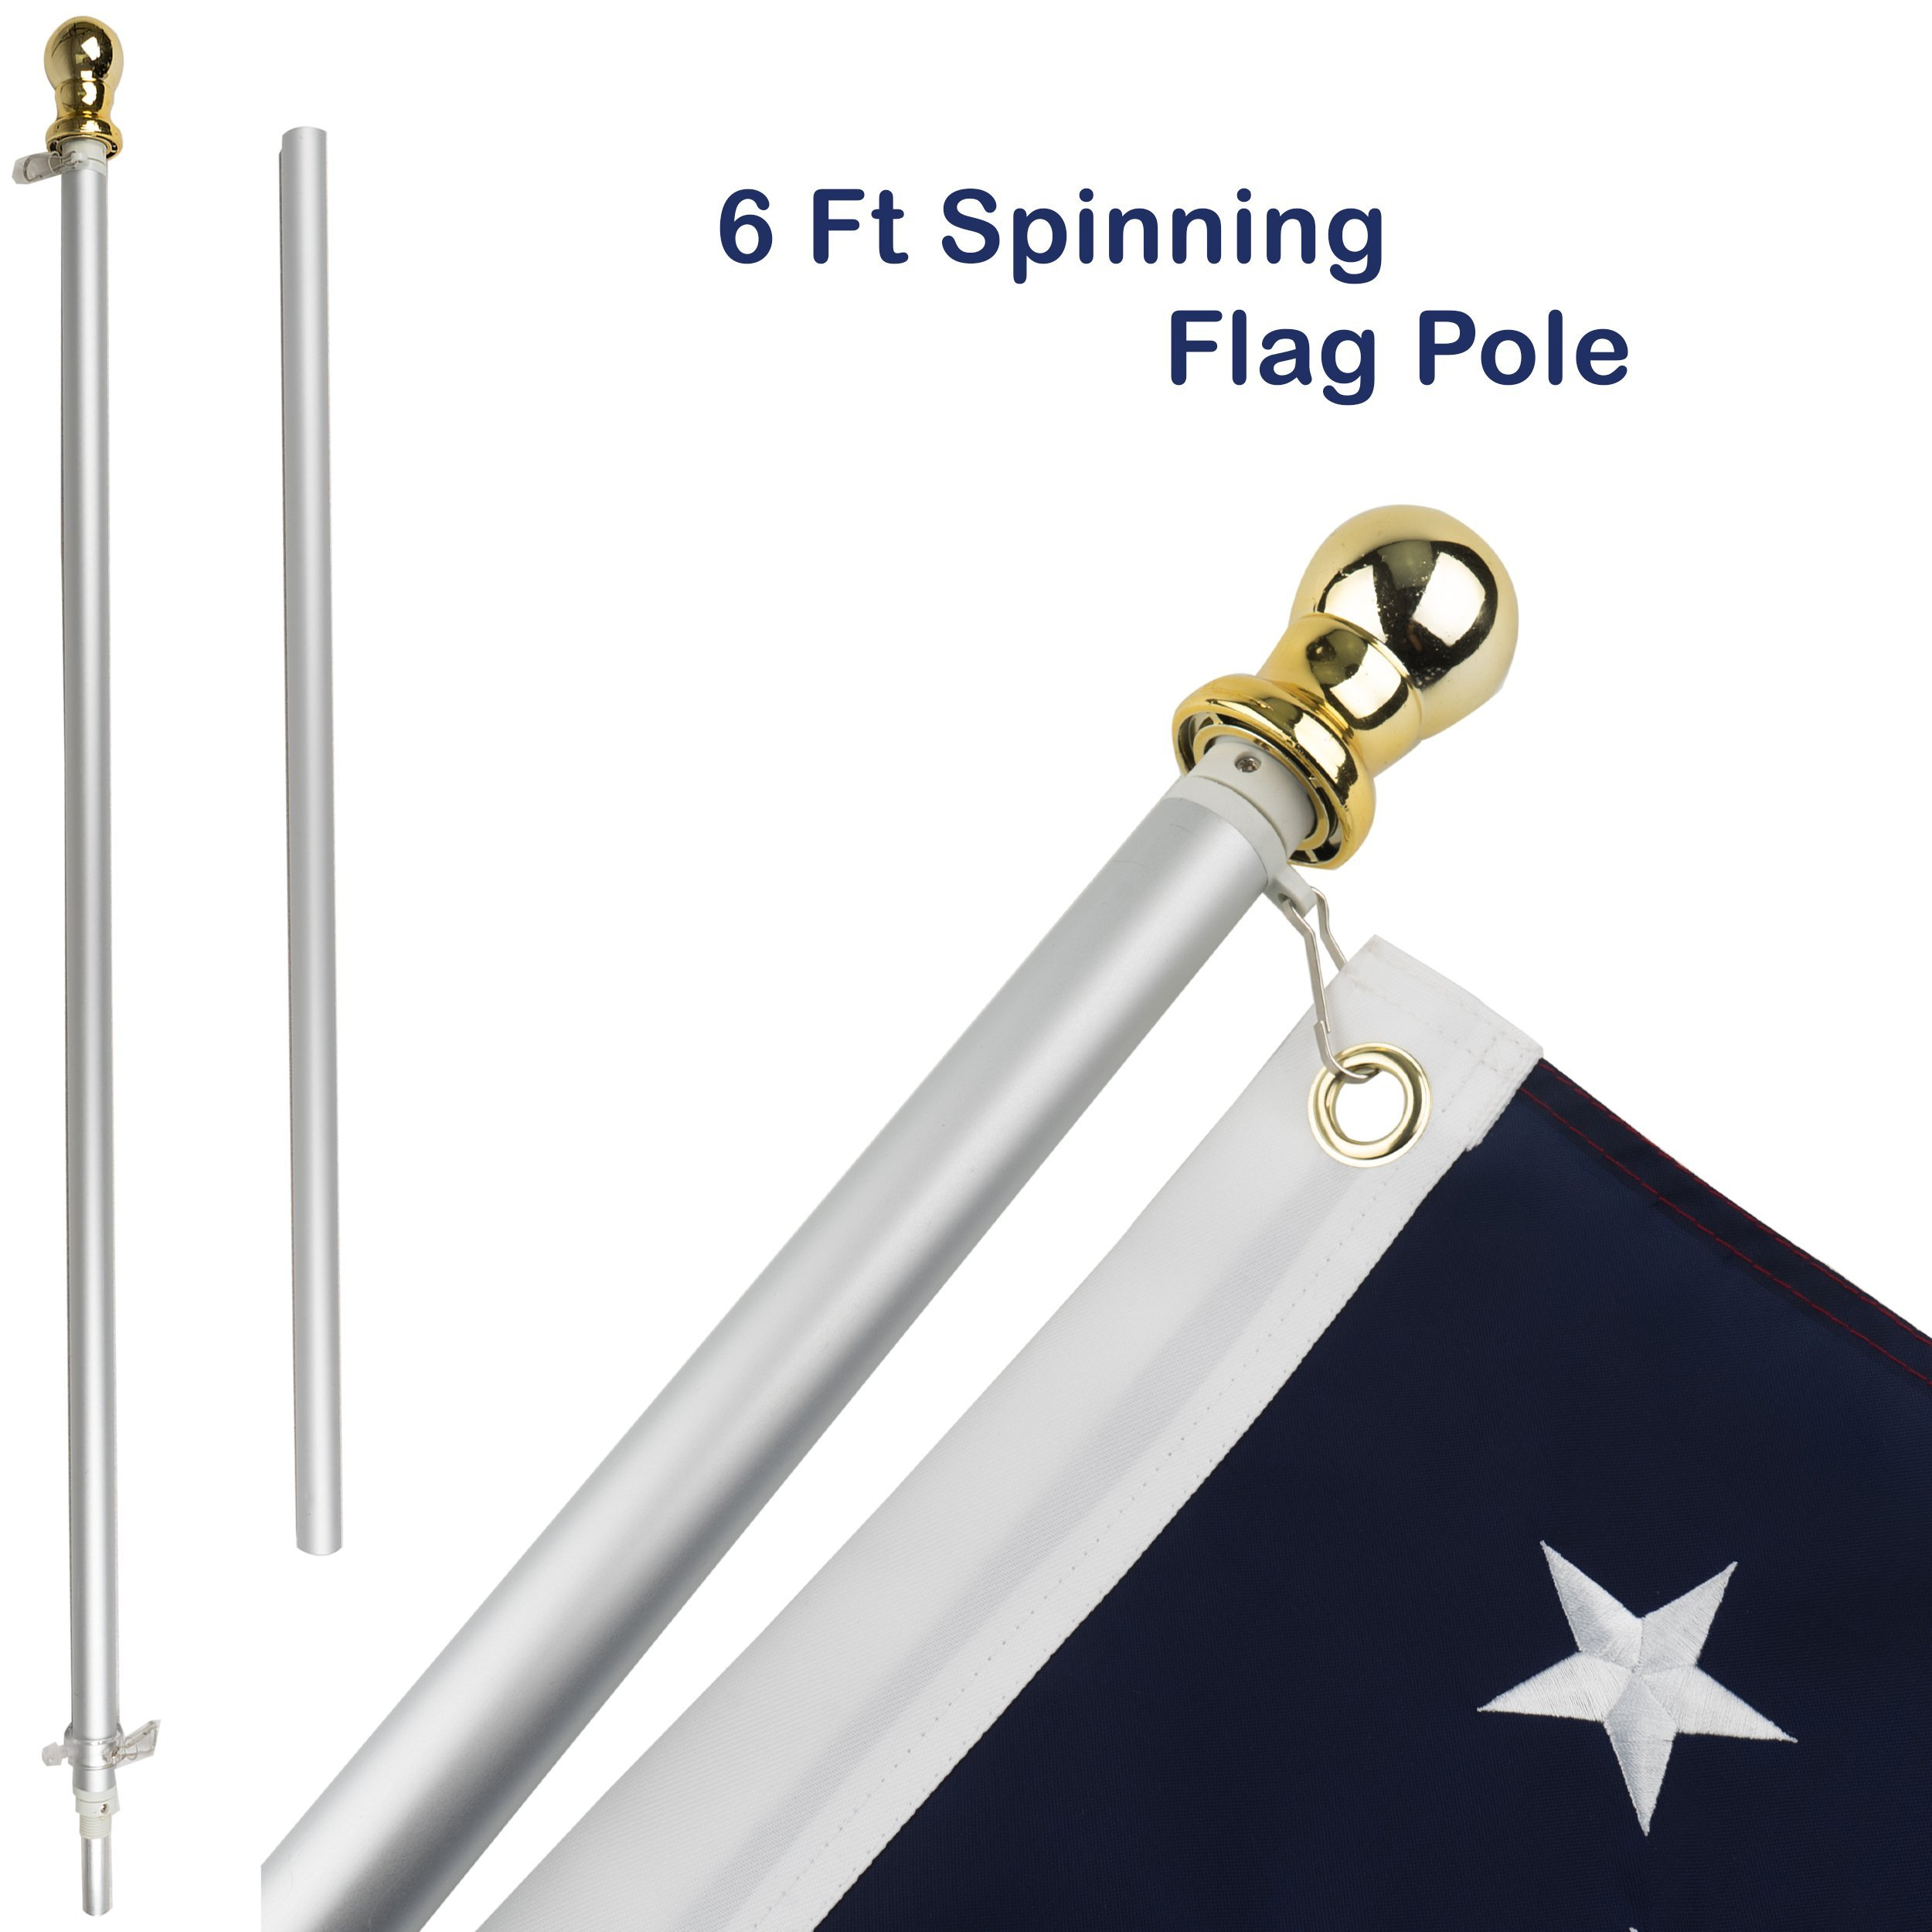 Jetlifee Tangle Free Spinning Flag Pole by Veterans Owned Biz. 6ft Aluminum No Tangle Spinning Pole with Silver Colored Globe Rust Free and Wind Resistant. for Any Home, Residential or Commercial Use